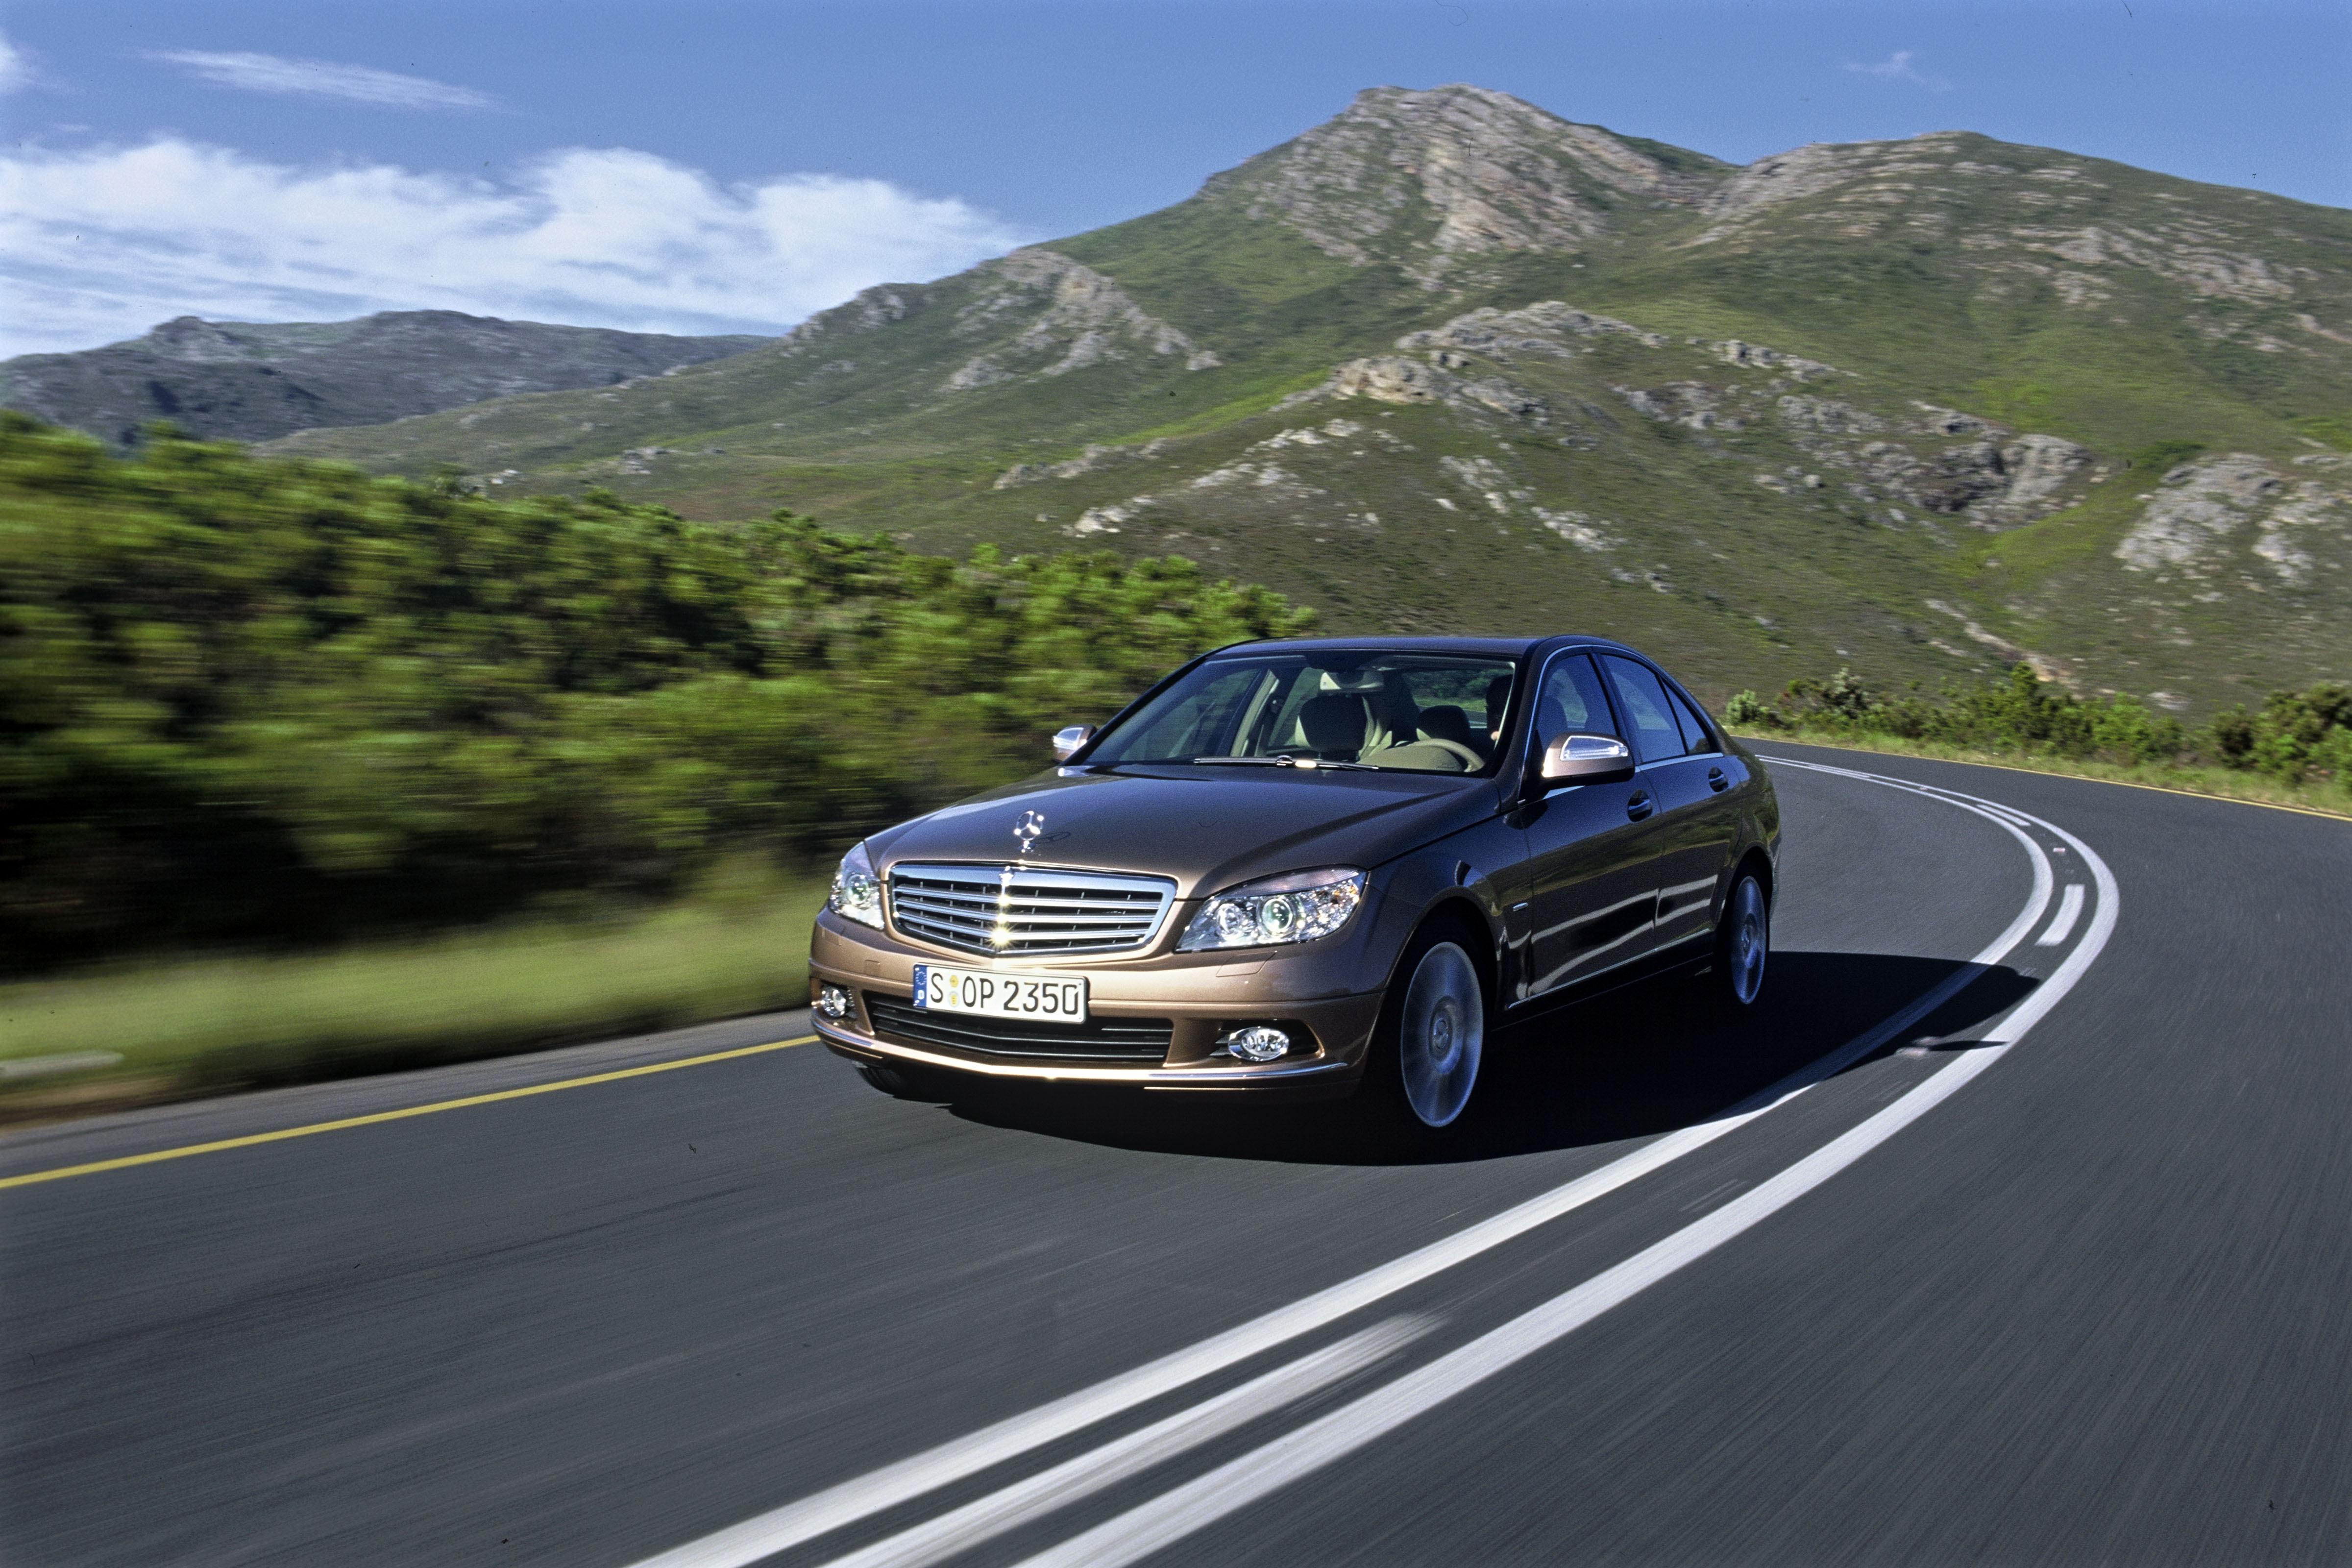 Merc C-class, one of 72 Top Safety Picks of 2009